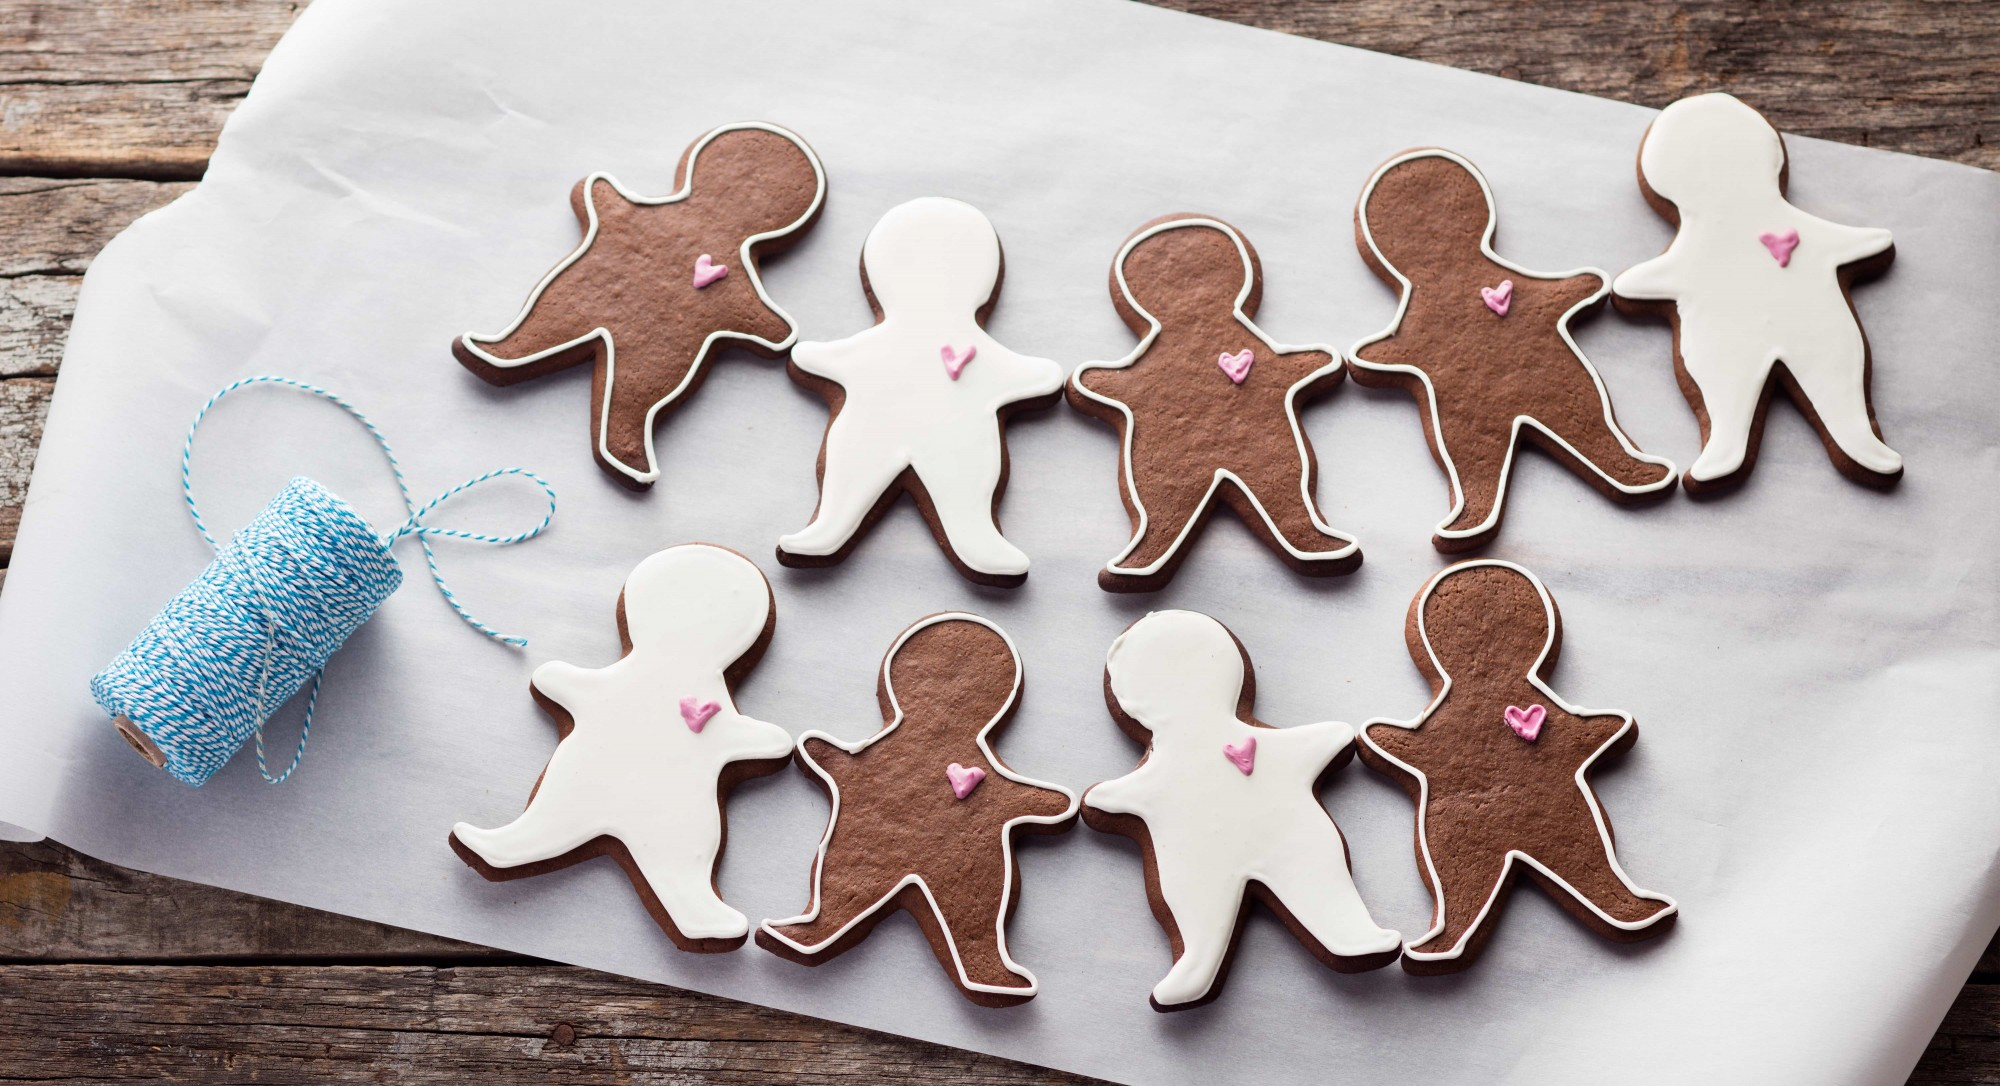 It Wouldn't Be Christmas Without Iced Gingerbread Men